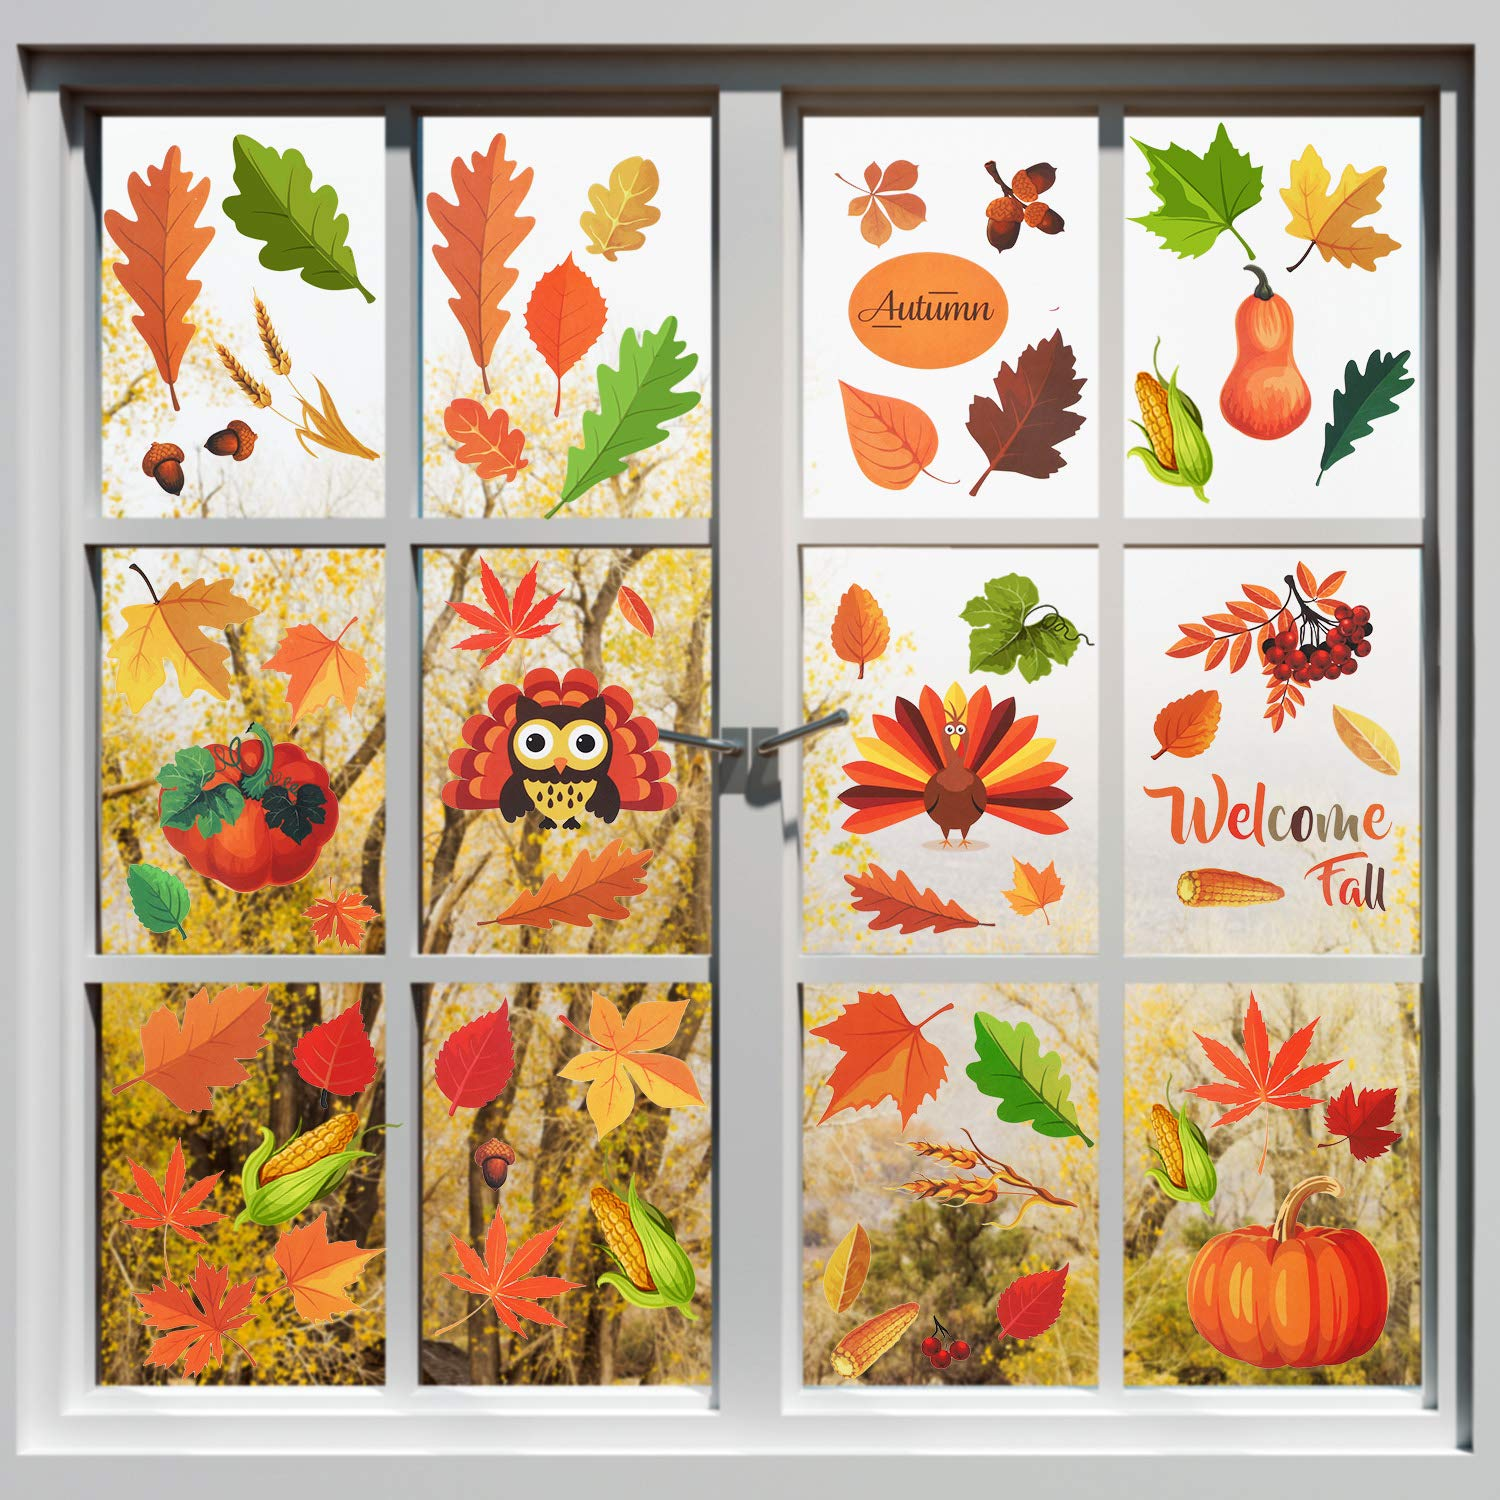 Astounding 210 Pieces Fall Leaves Window Cling Stickers Thanksgiving Autumn Leaves Stickers Harvest Maple Acorn Window Decals For Autumn Holiday Party Bralicious Painted Fabric Chair Ideas Braliciousco